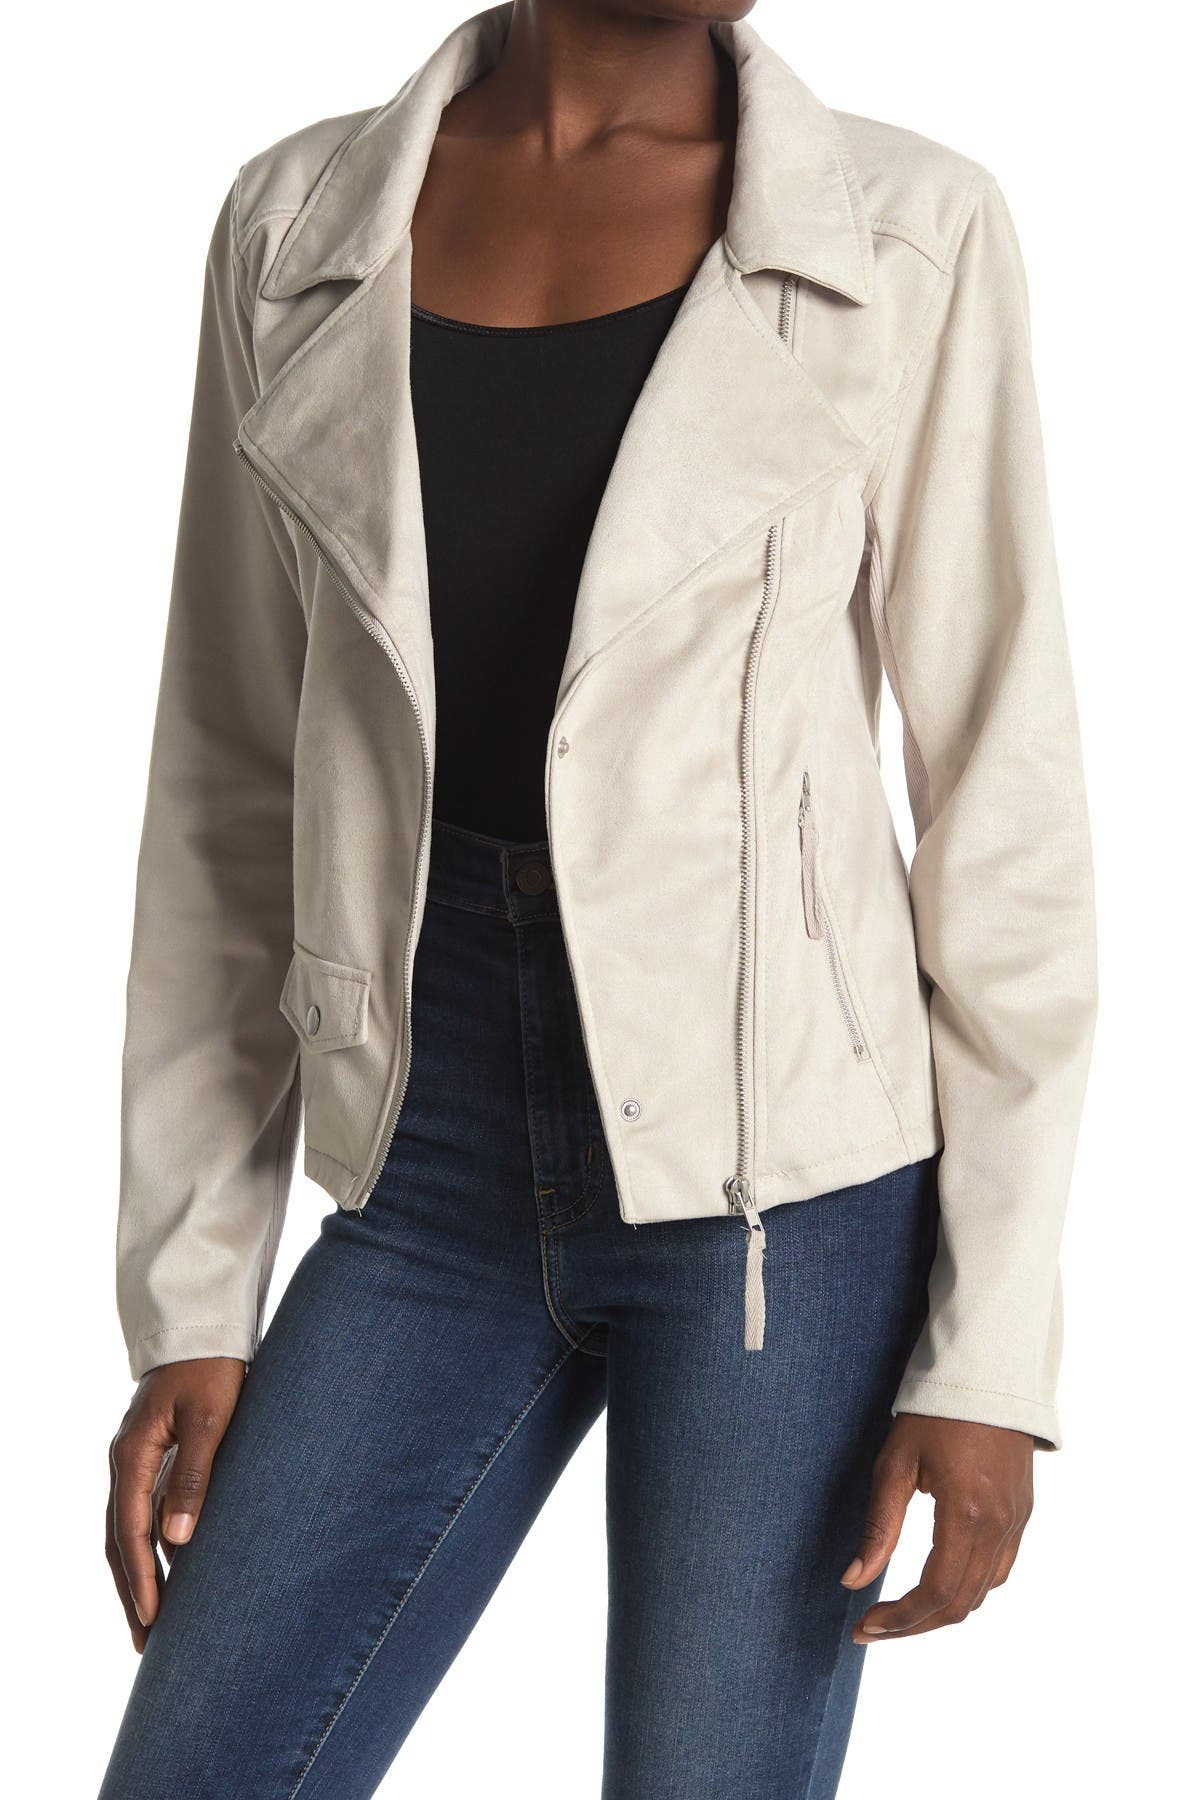 THREAD AND SUPPLY Faux Suede Moto Jacket